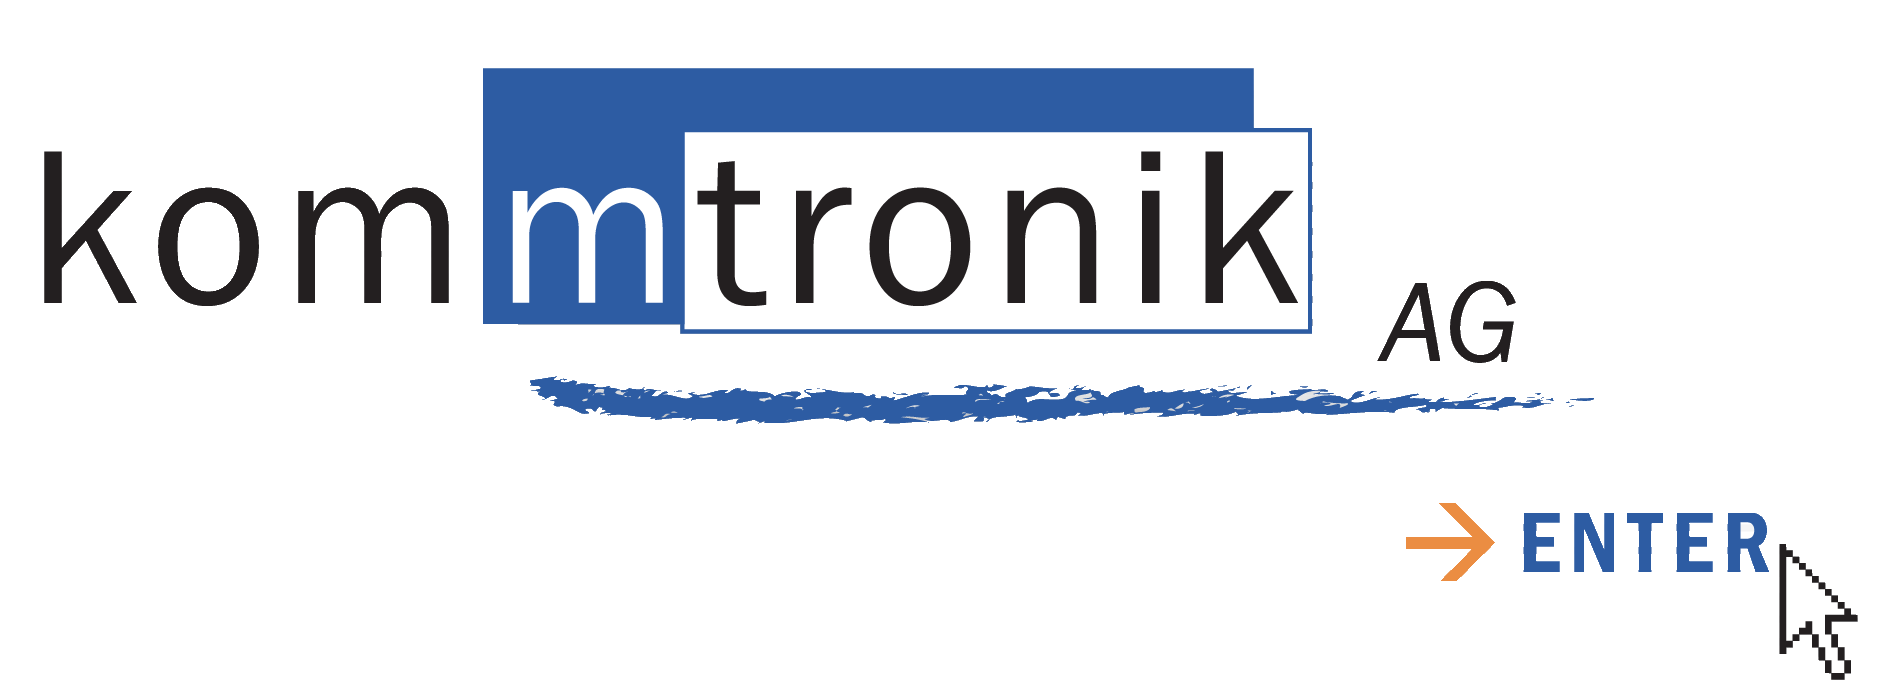 Kommtronik AG Support